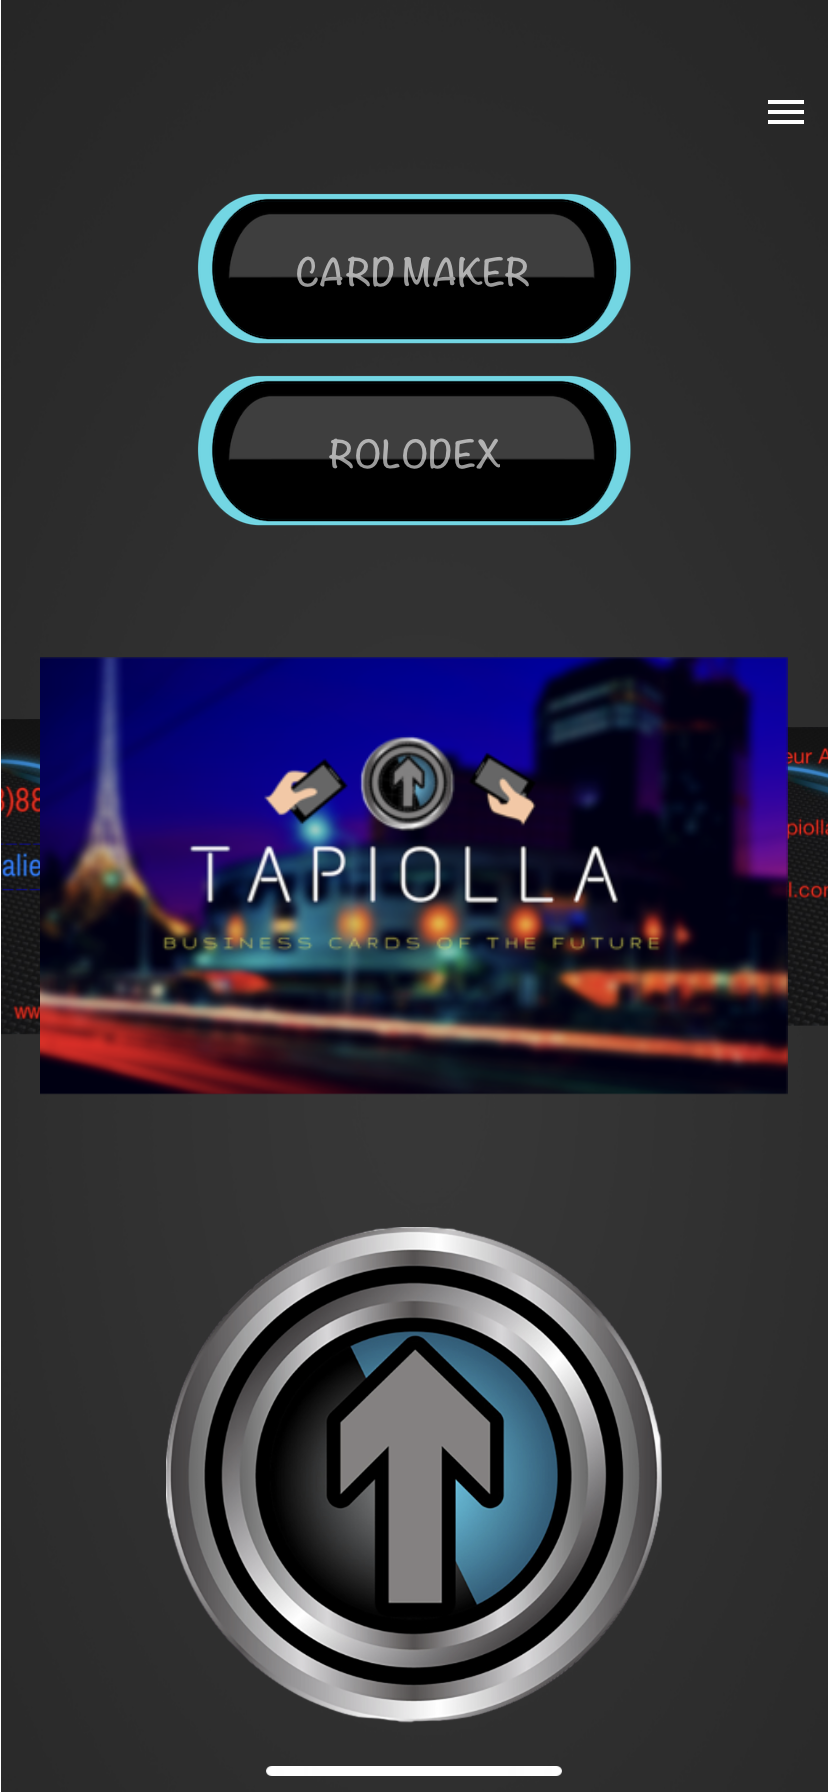 Tapiolla-HomePage